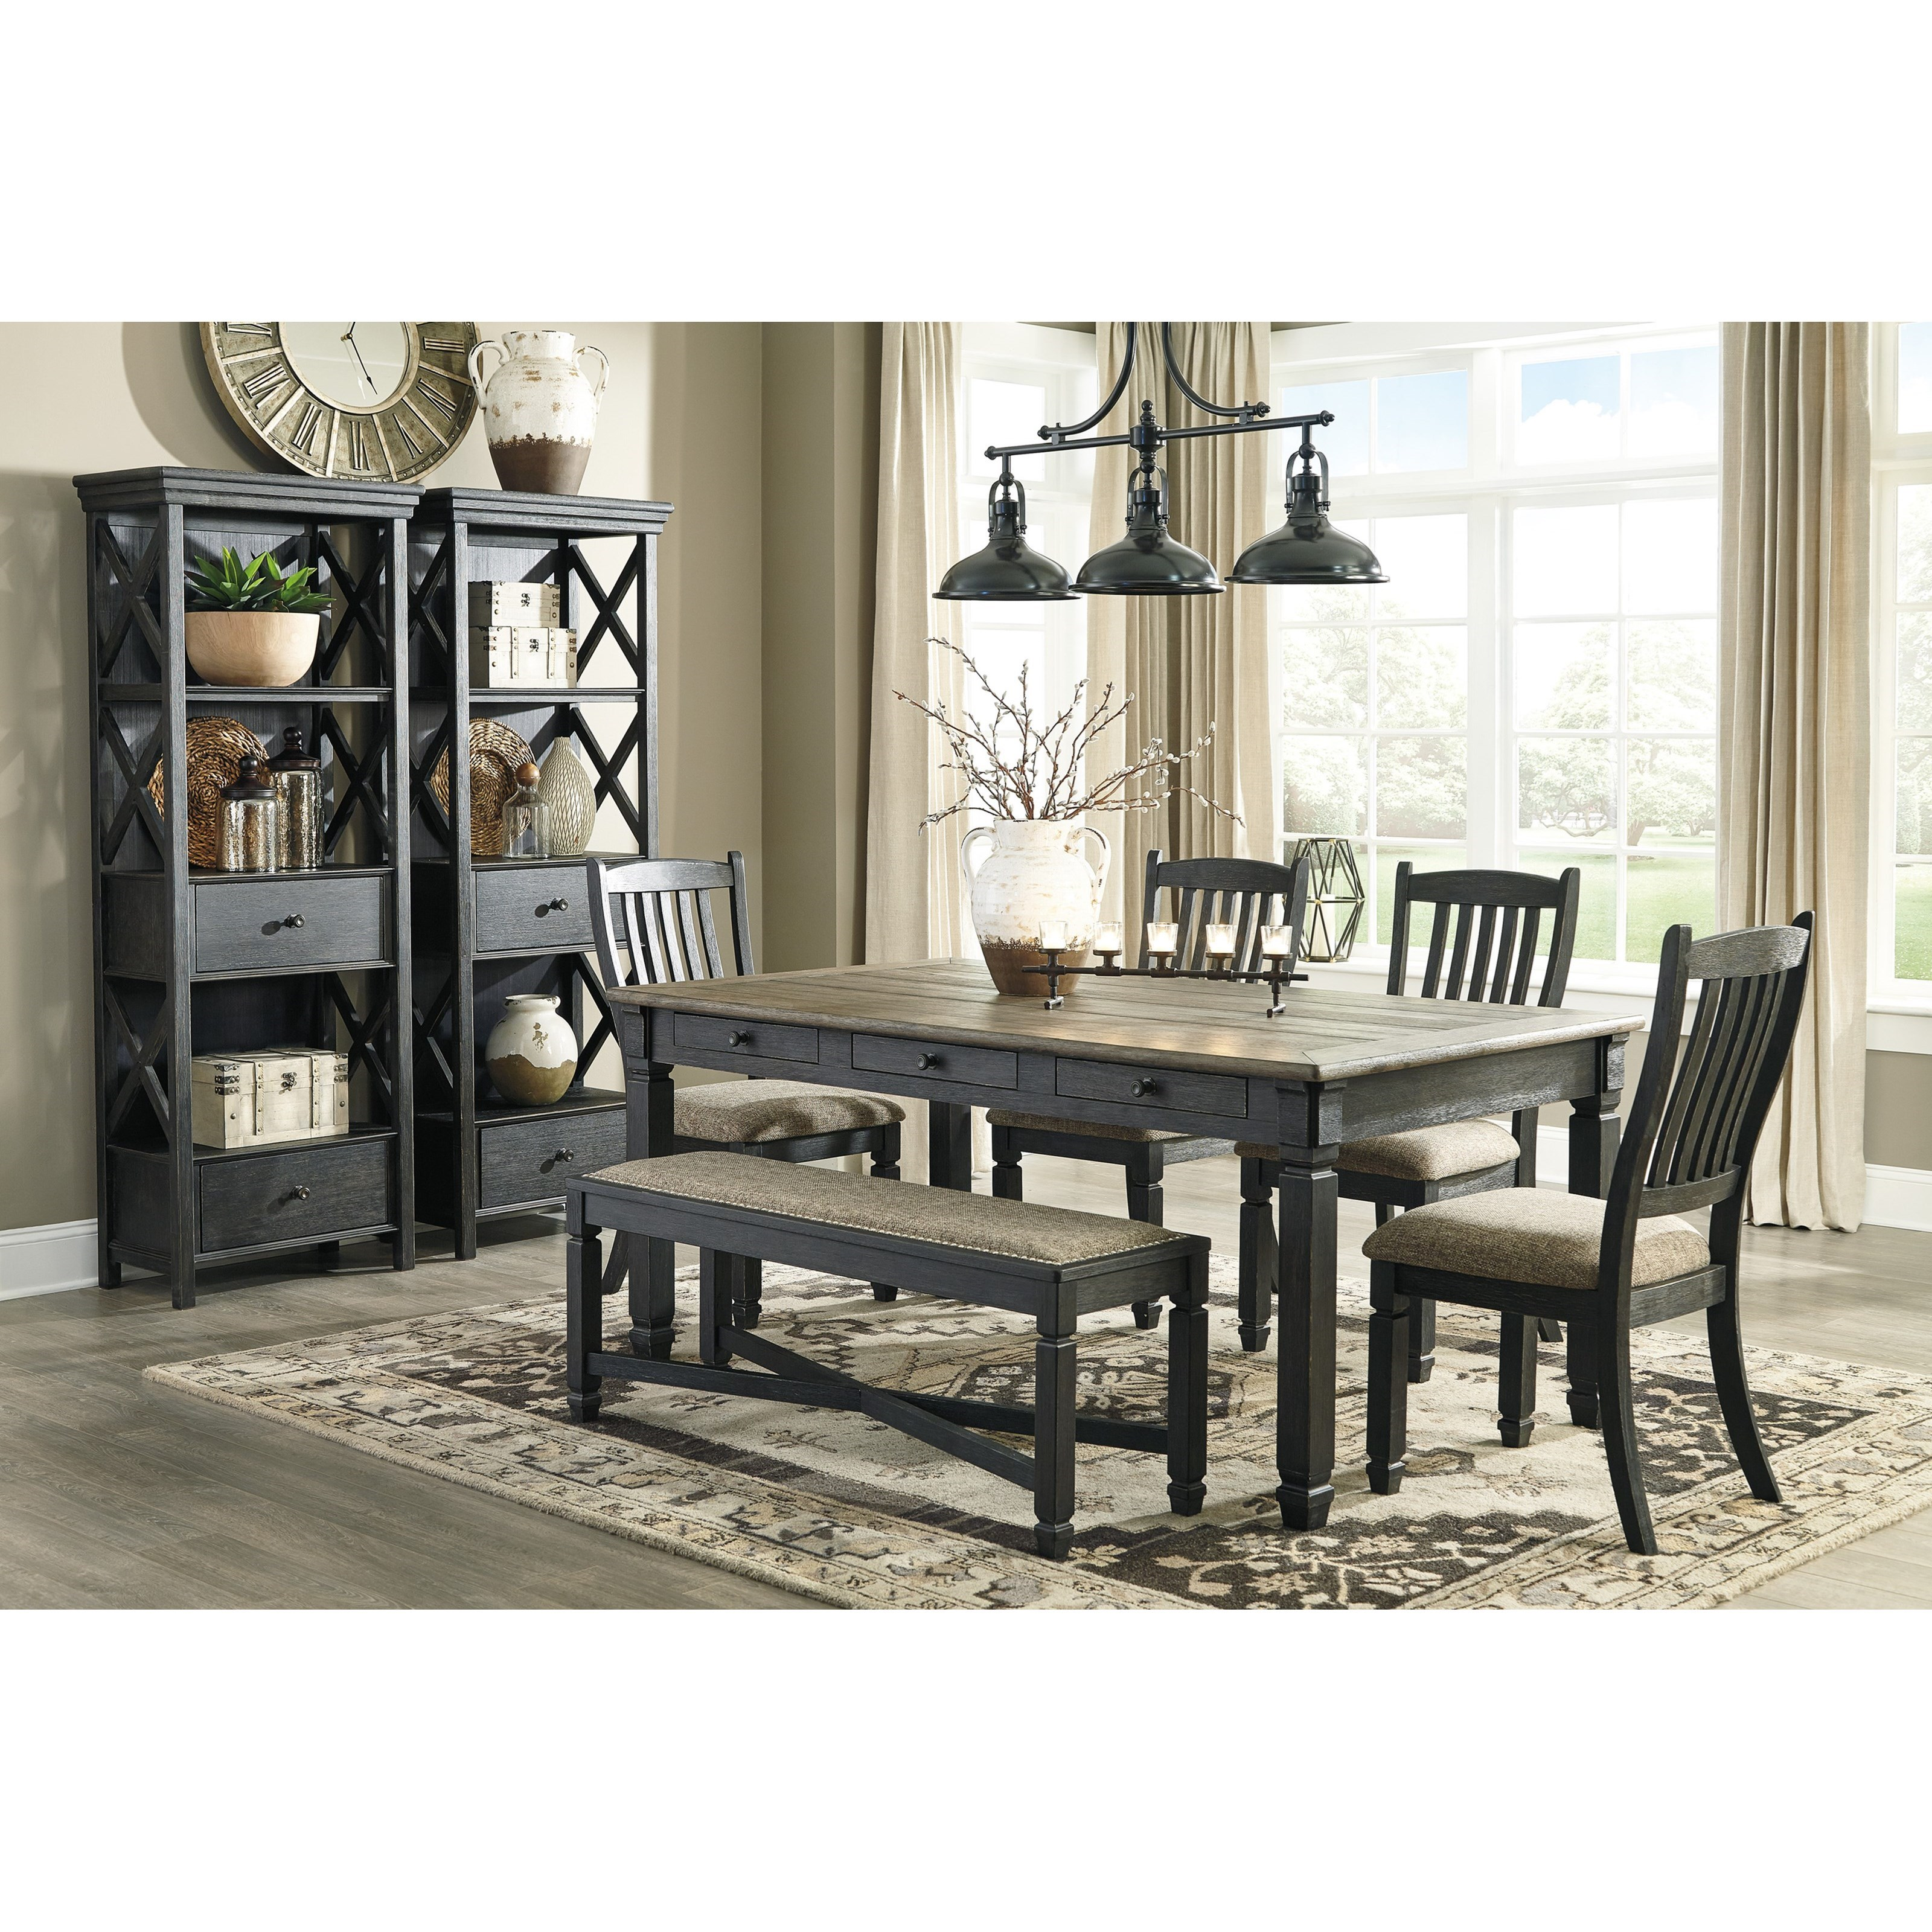 Tyler Creek Formal Dining Room Group by Signature Design by Ashley at Factory Direct Furniture